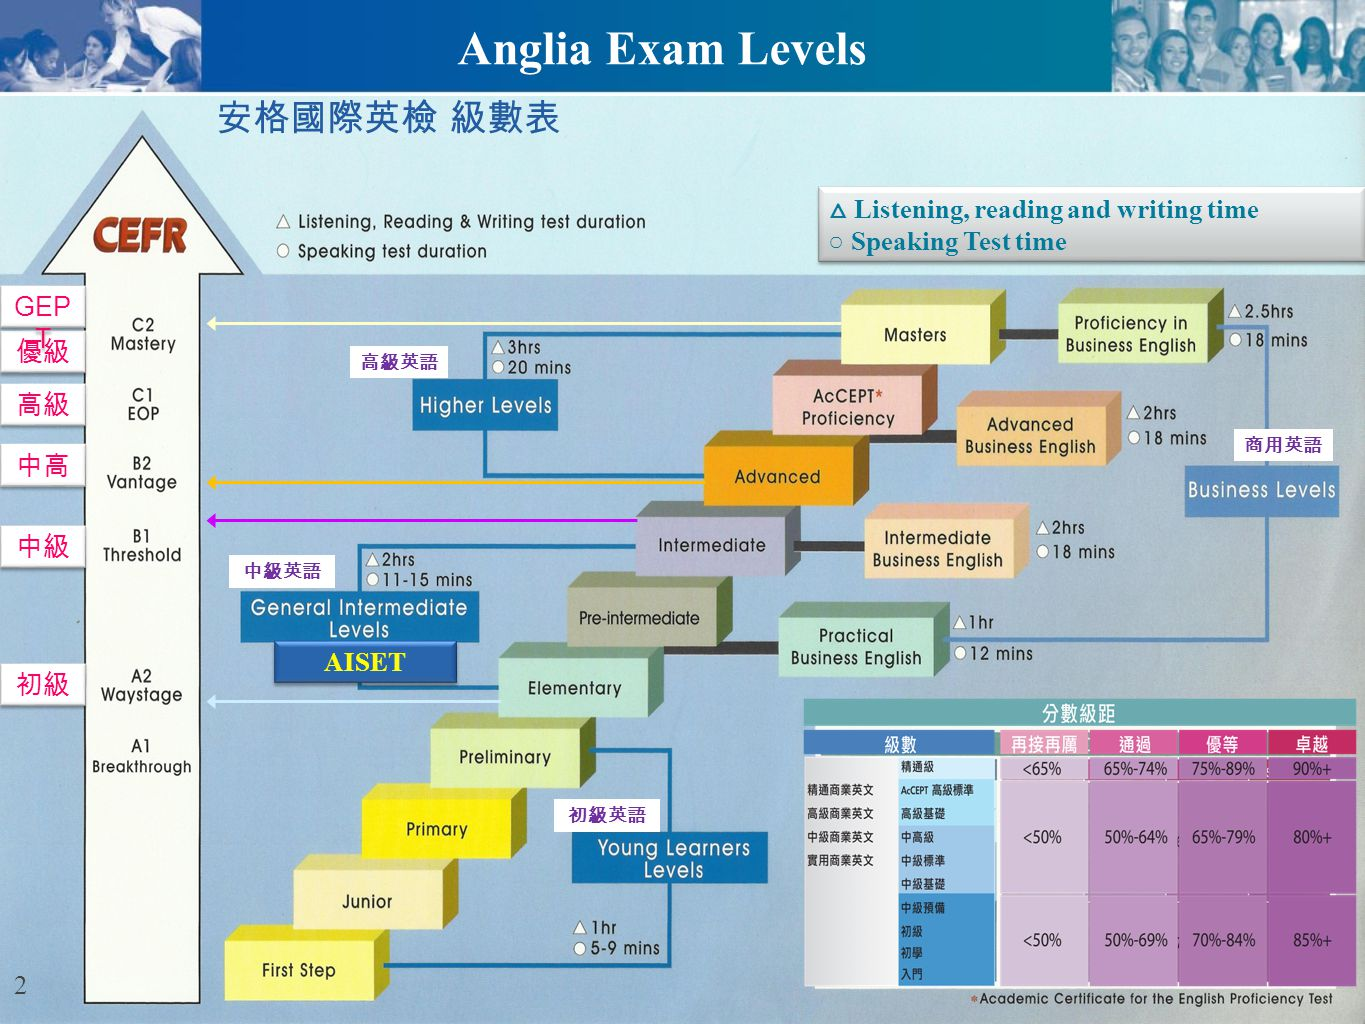 Anglia Exam Levels 安格國際英檢 級數表 △ Listening, reading and writing time